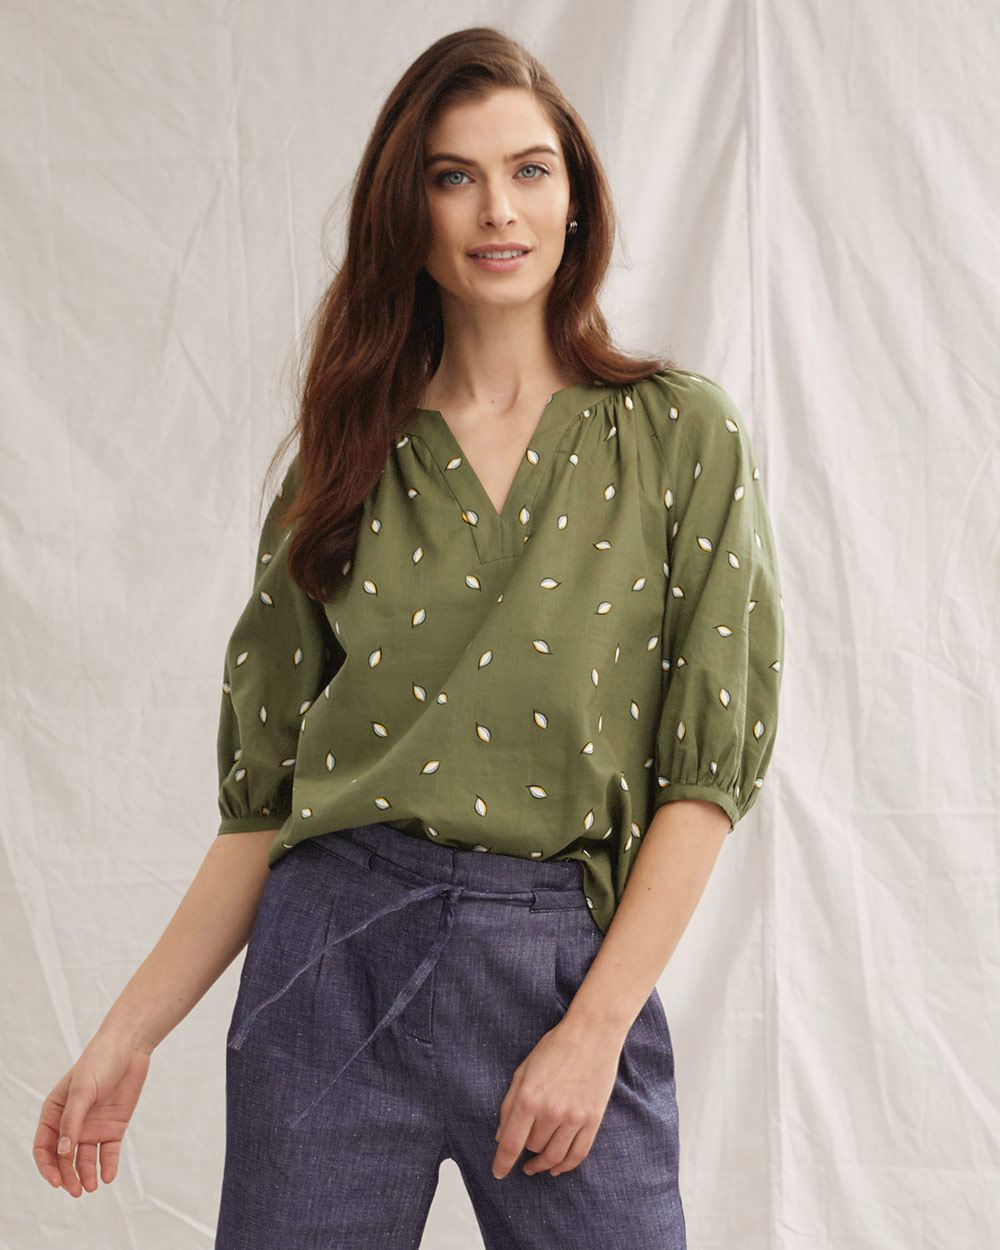 Scoop Neck with 3/4 Sleeves Blouse